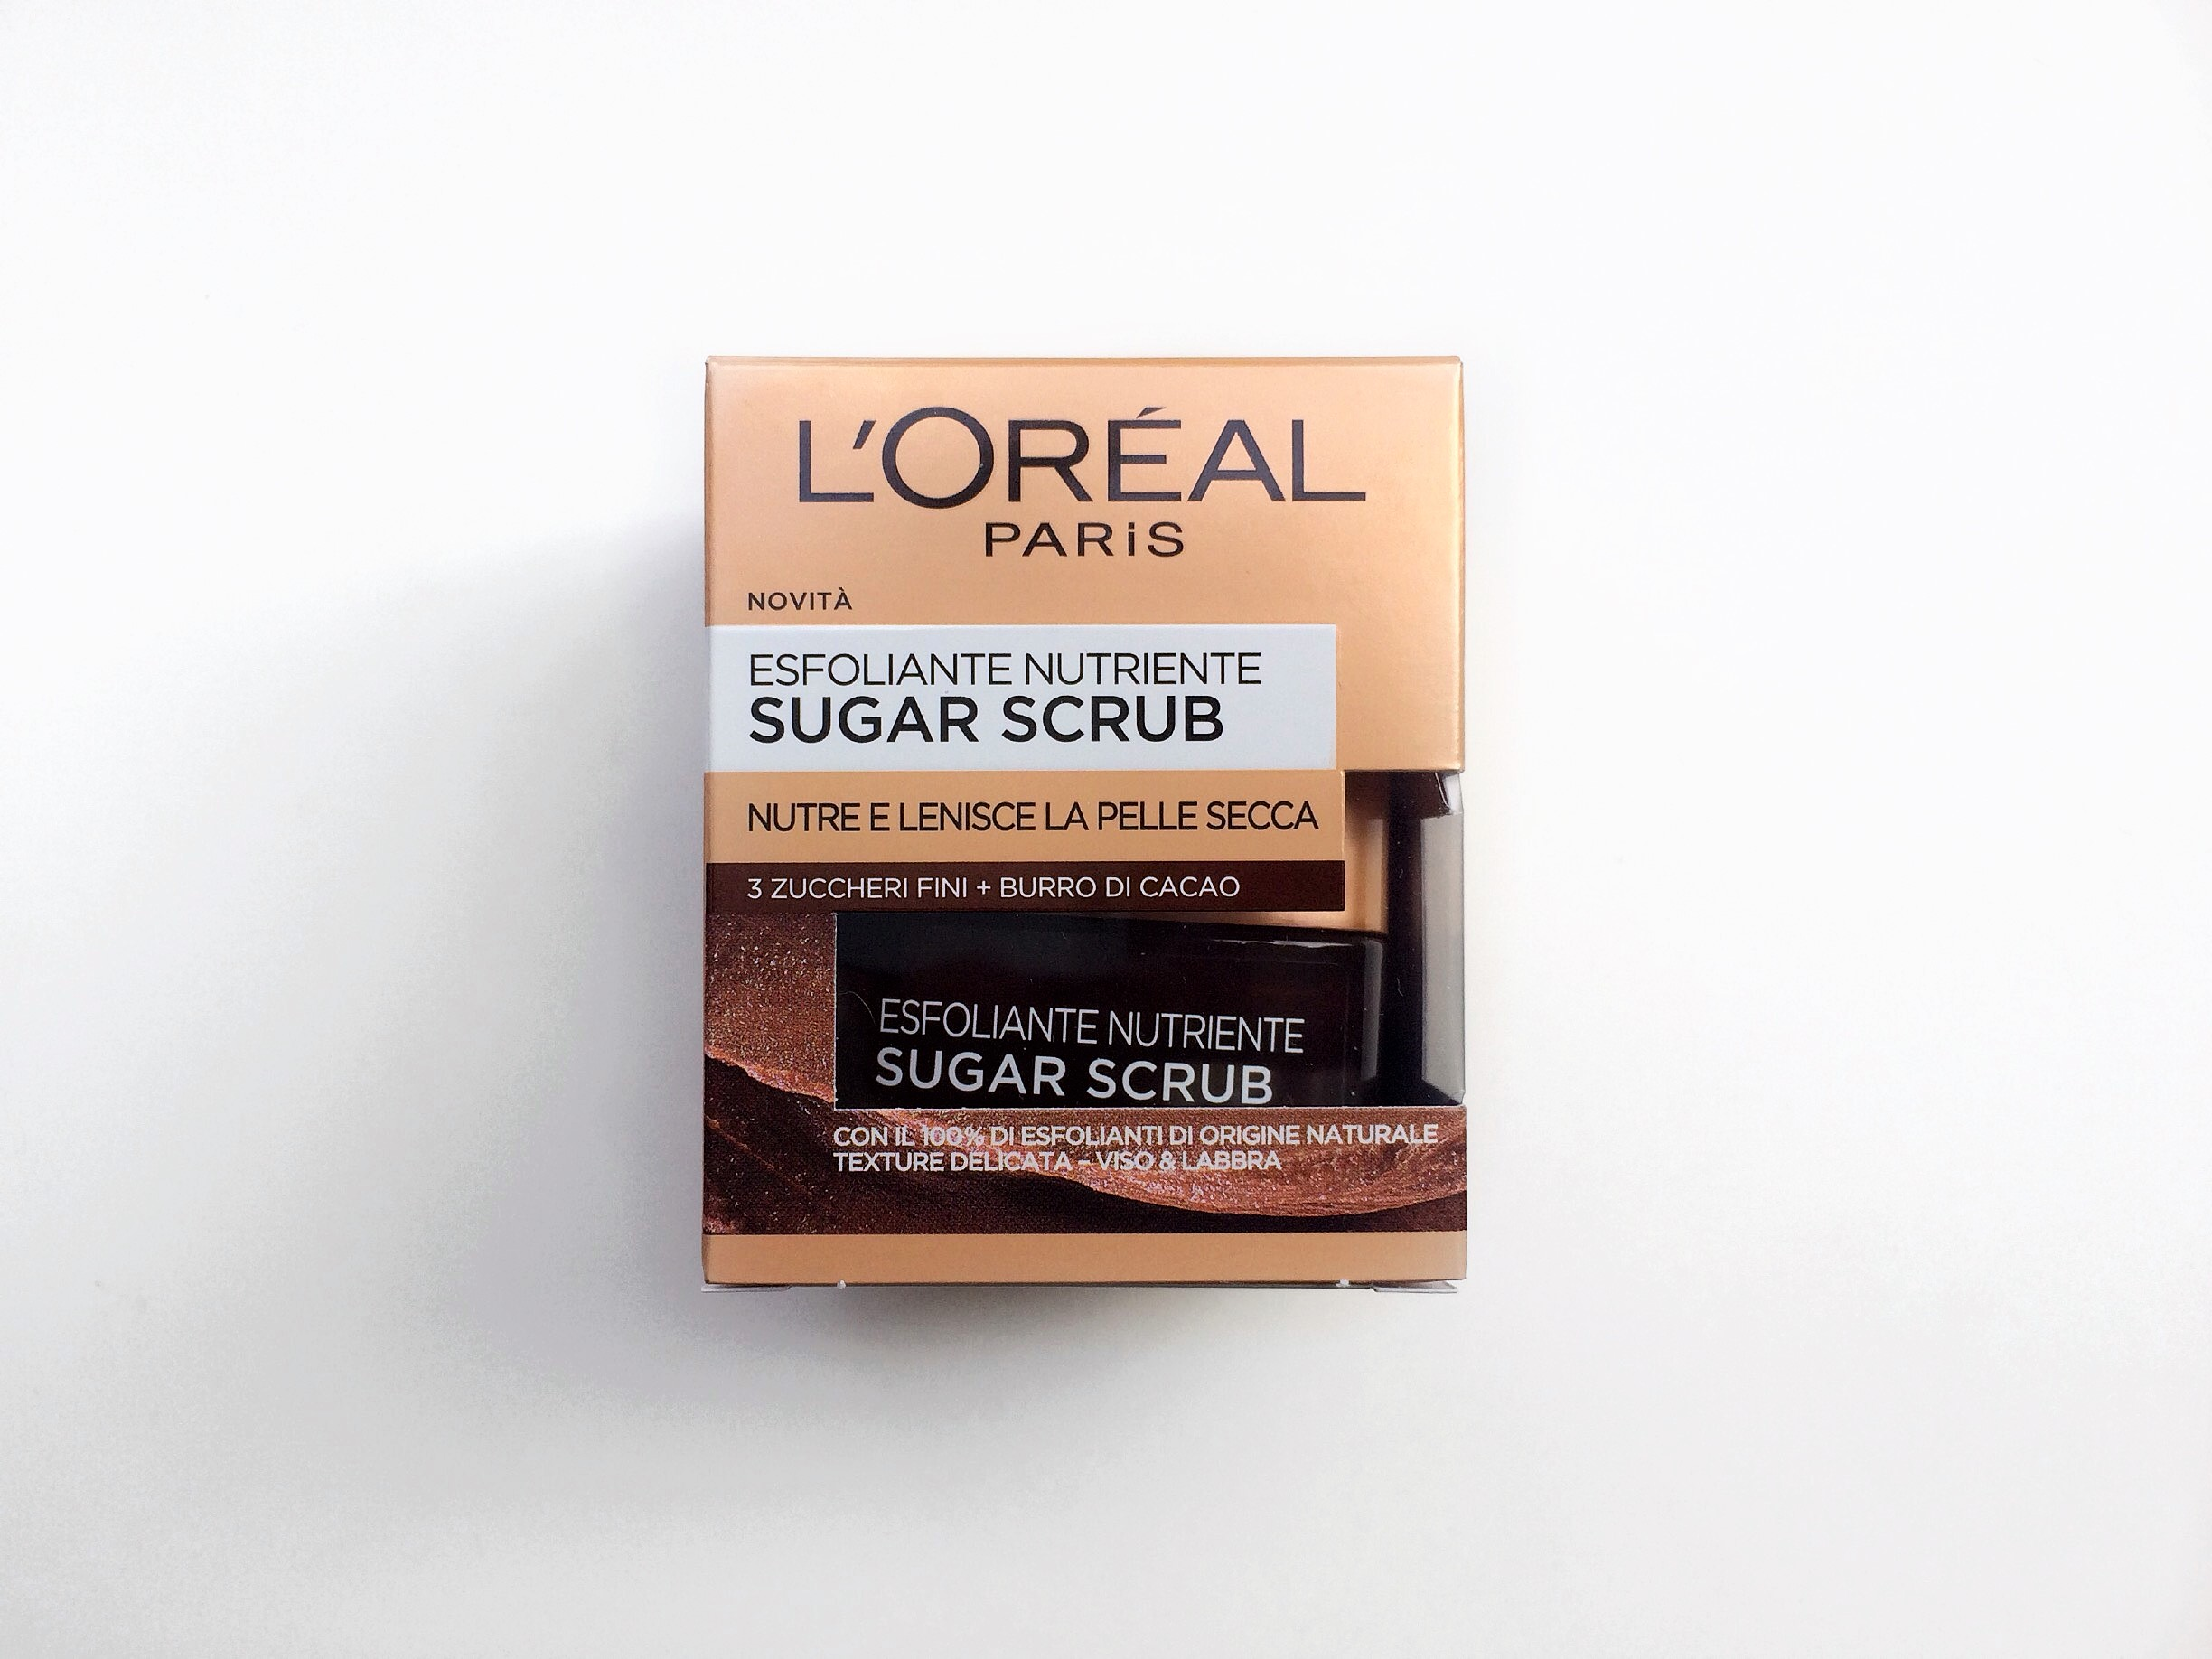 L'Oréal Pure Sugar Nurish & Soften Face Scrub (1).jpg